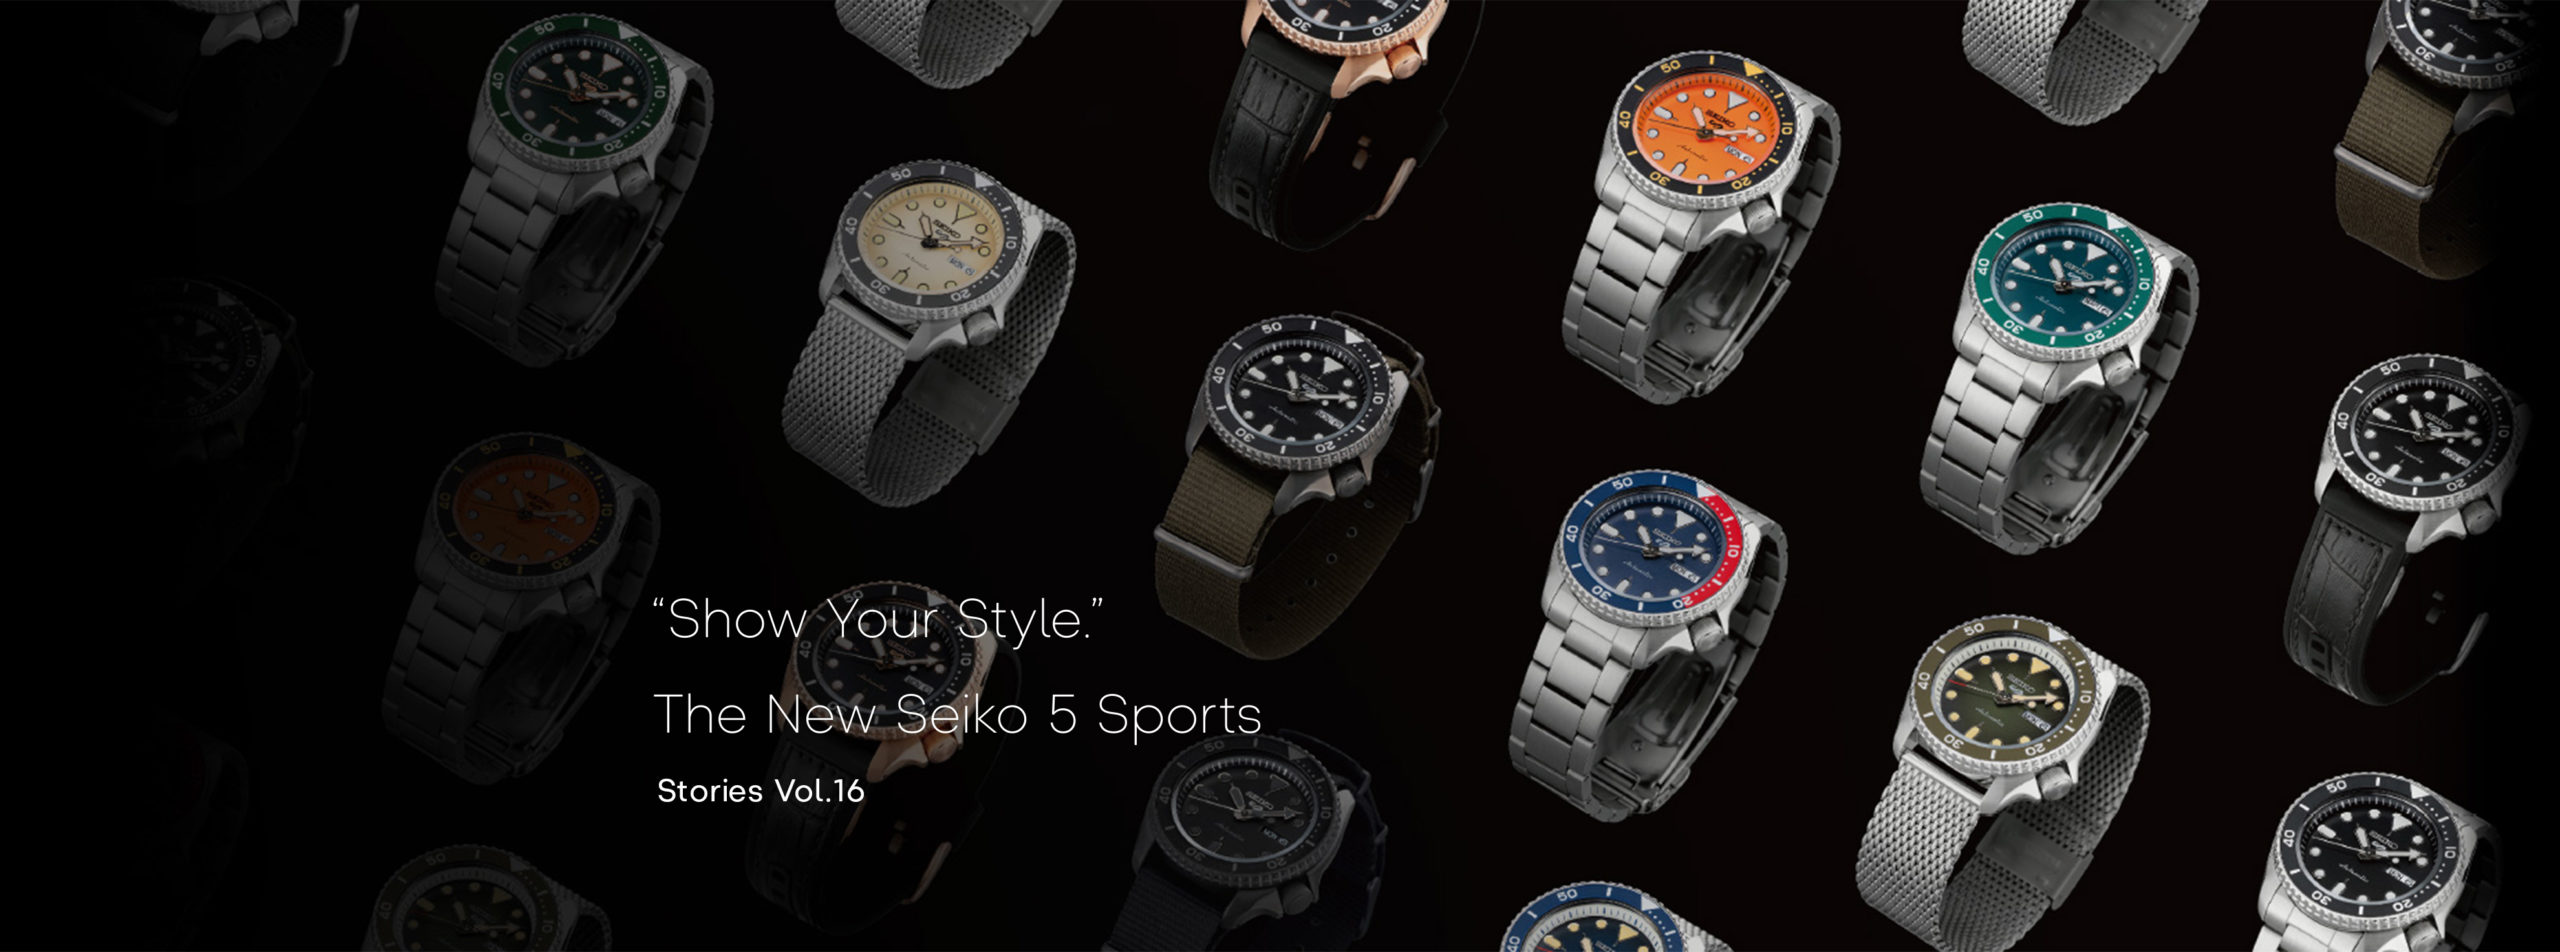 """Vol.16 """"Show Your Style."""" The New Seiko 5 Sports"""